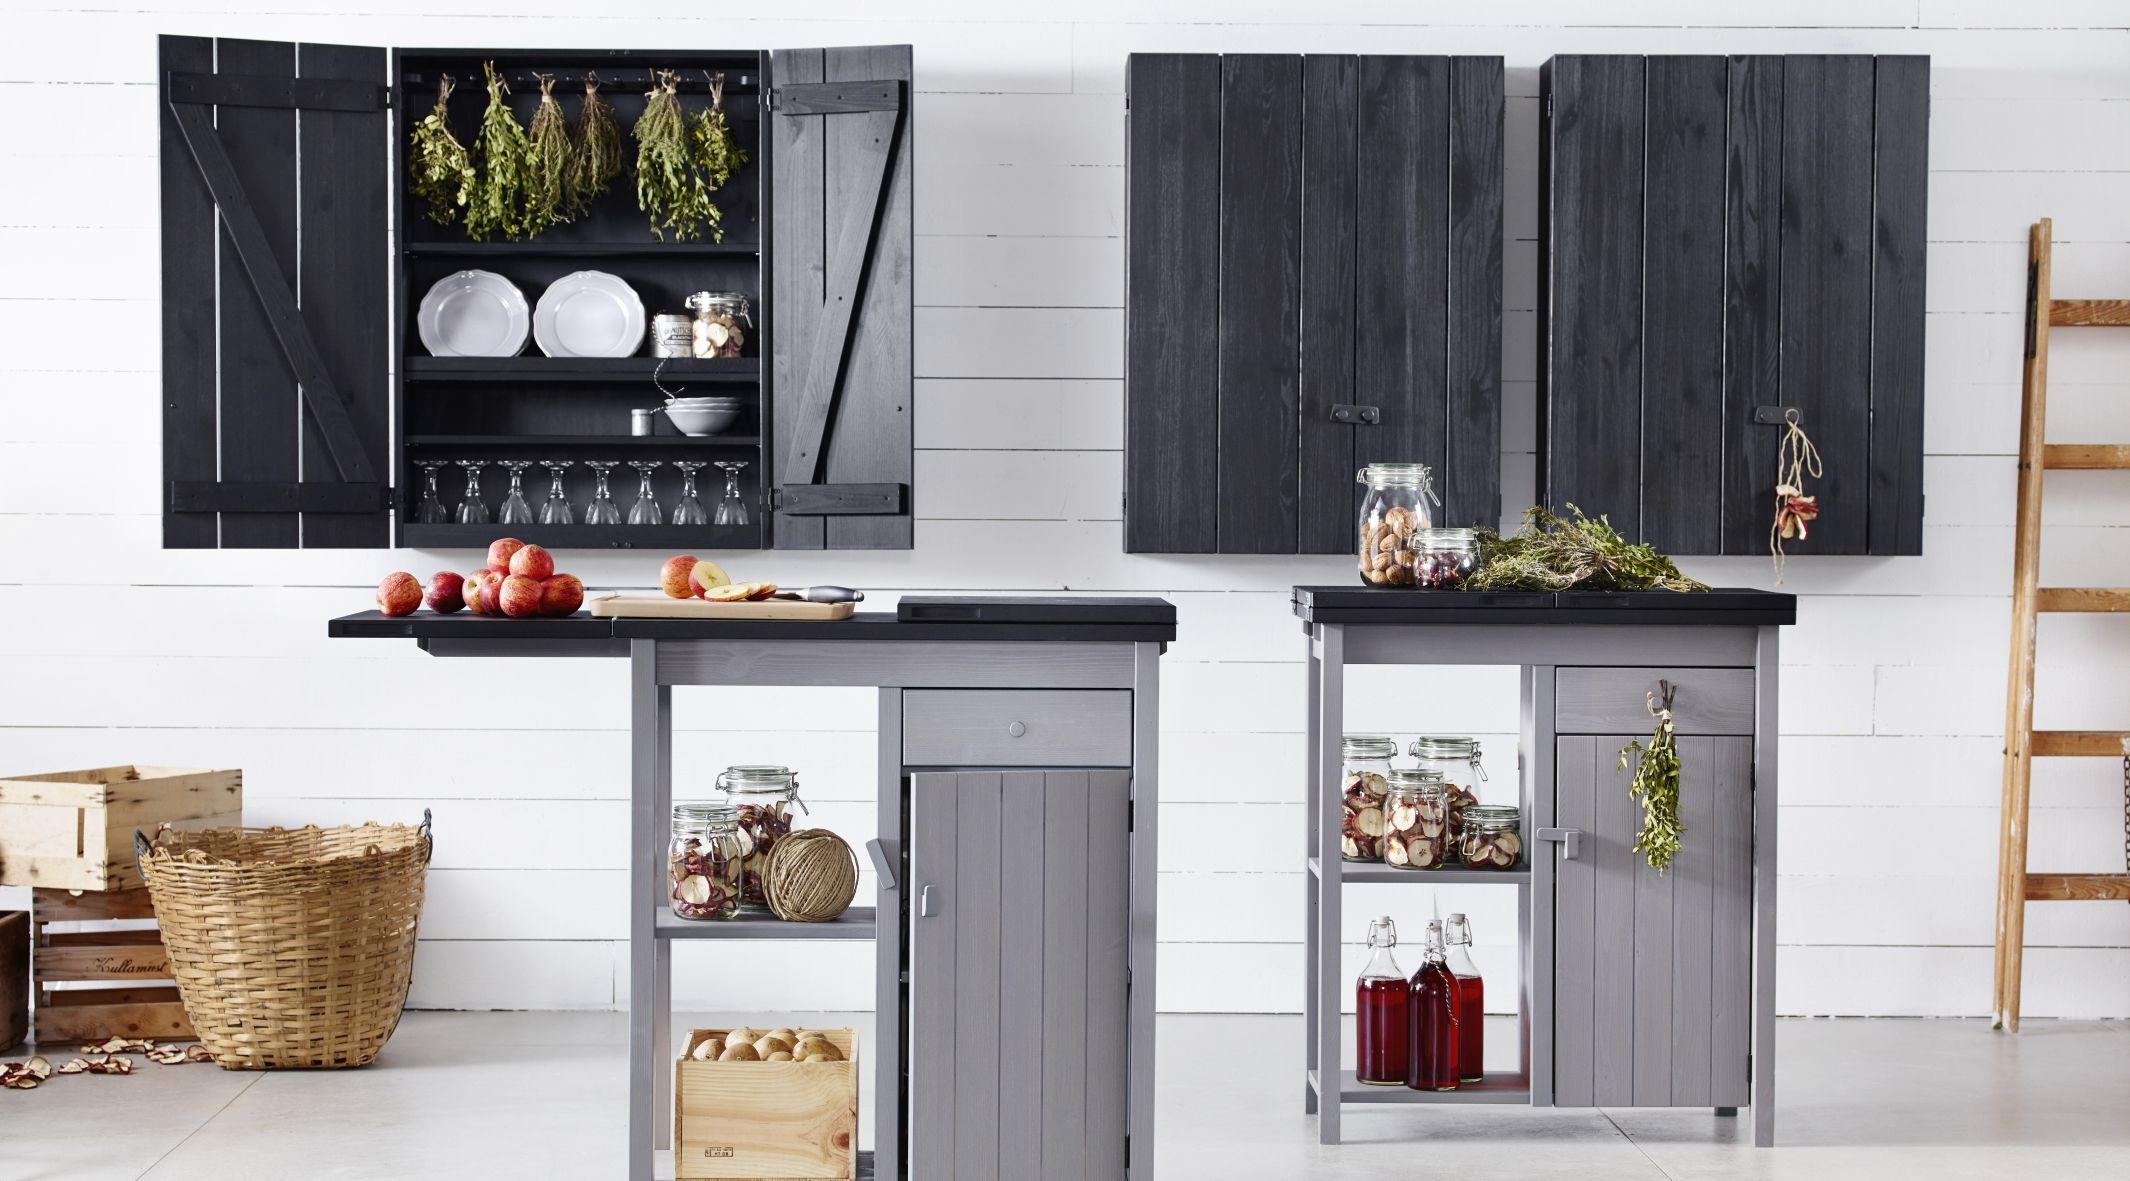 Ikea OLOFSTORP Wall Cabinets And Storage Units In Black Grey